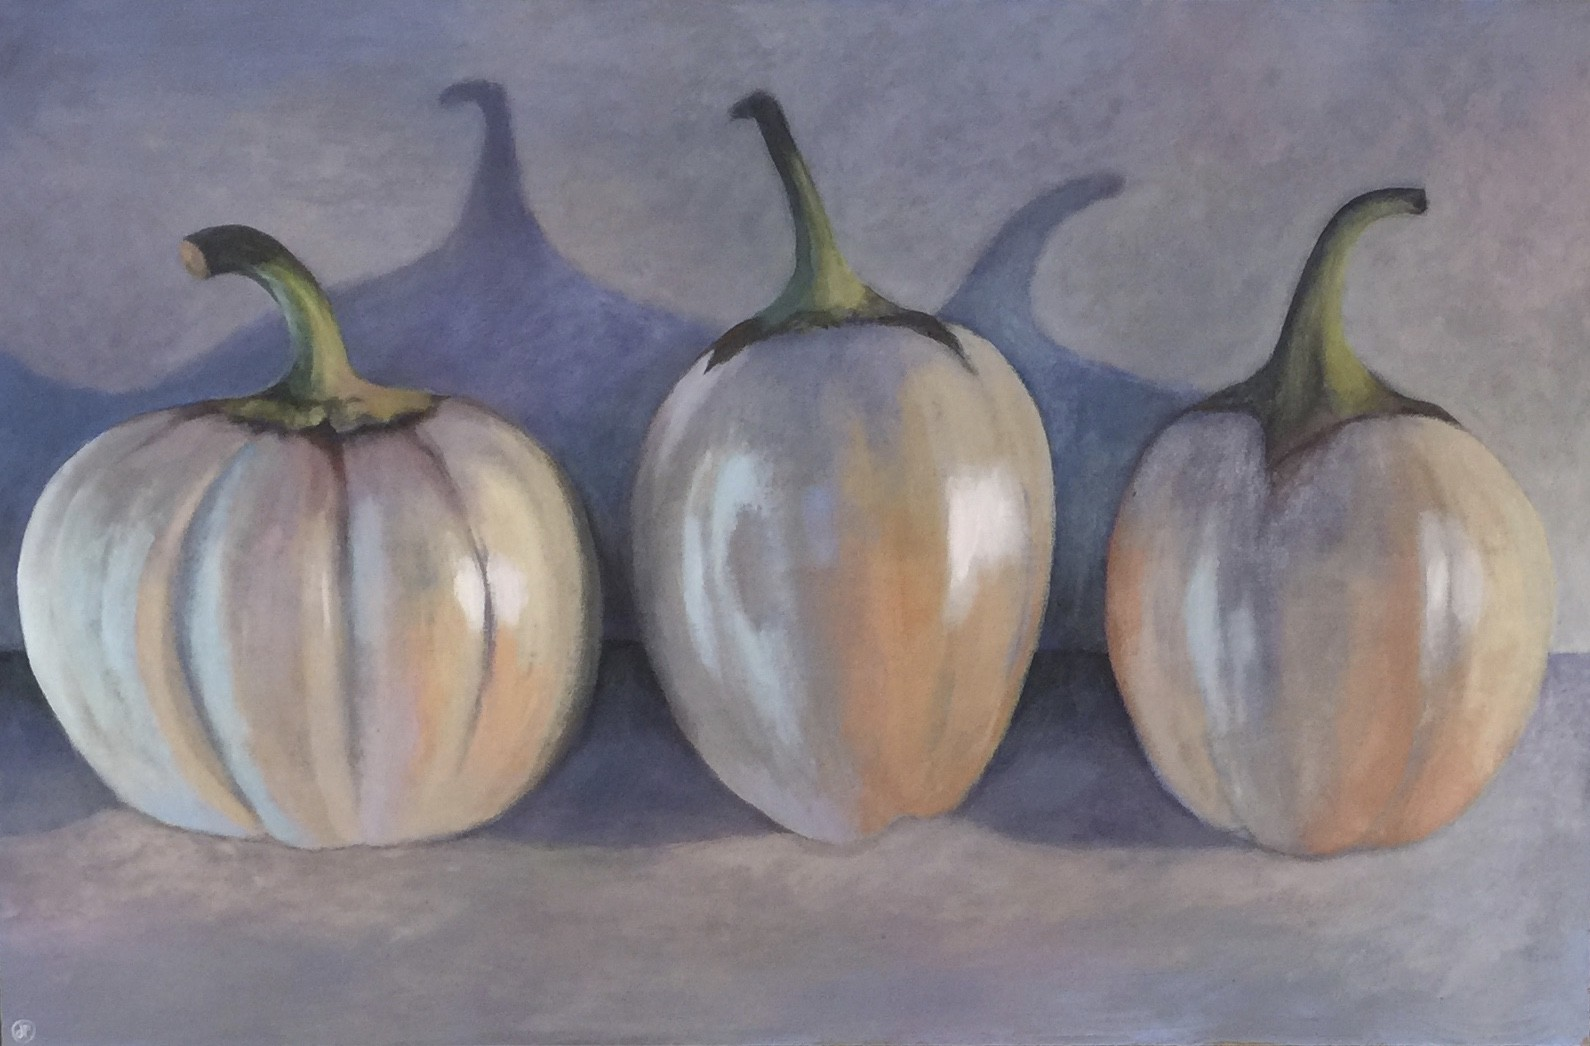 """<span class=""""link fancybox-details-link""""><a href=""""/artists/34-joyce-pinch/works/287-joyce-pinch-three-white-aubergines/"""">View Detail Page</a></span><div class=""""artist""""><strong>Joyce Pinch</strong></div> <div class=""""title""""><em>Three White Aubergines</em></div> <div class=""""medium"""">Acrylic on Board (framed)</div> <div class=""""dimensions"""">56 x 86 cm</div><div class=""""price"""">£750.00</div>"""